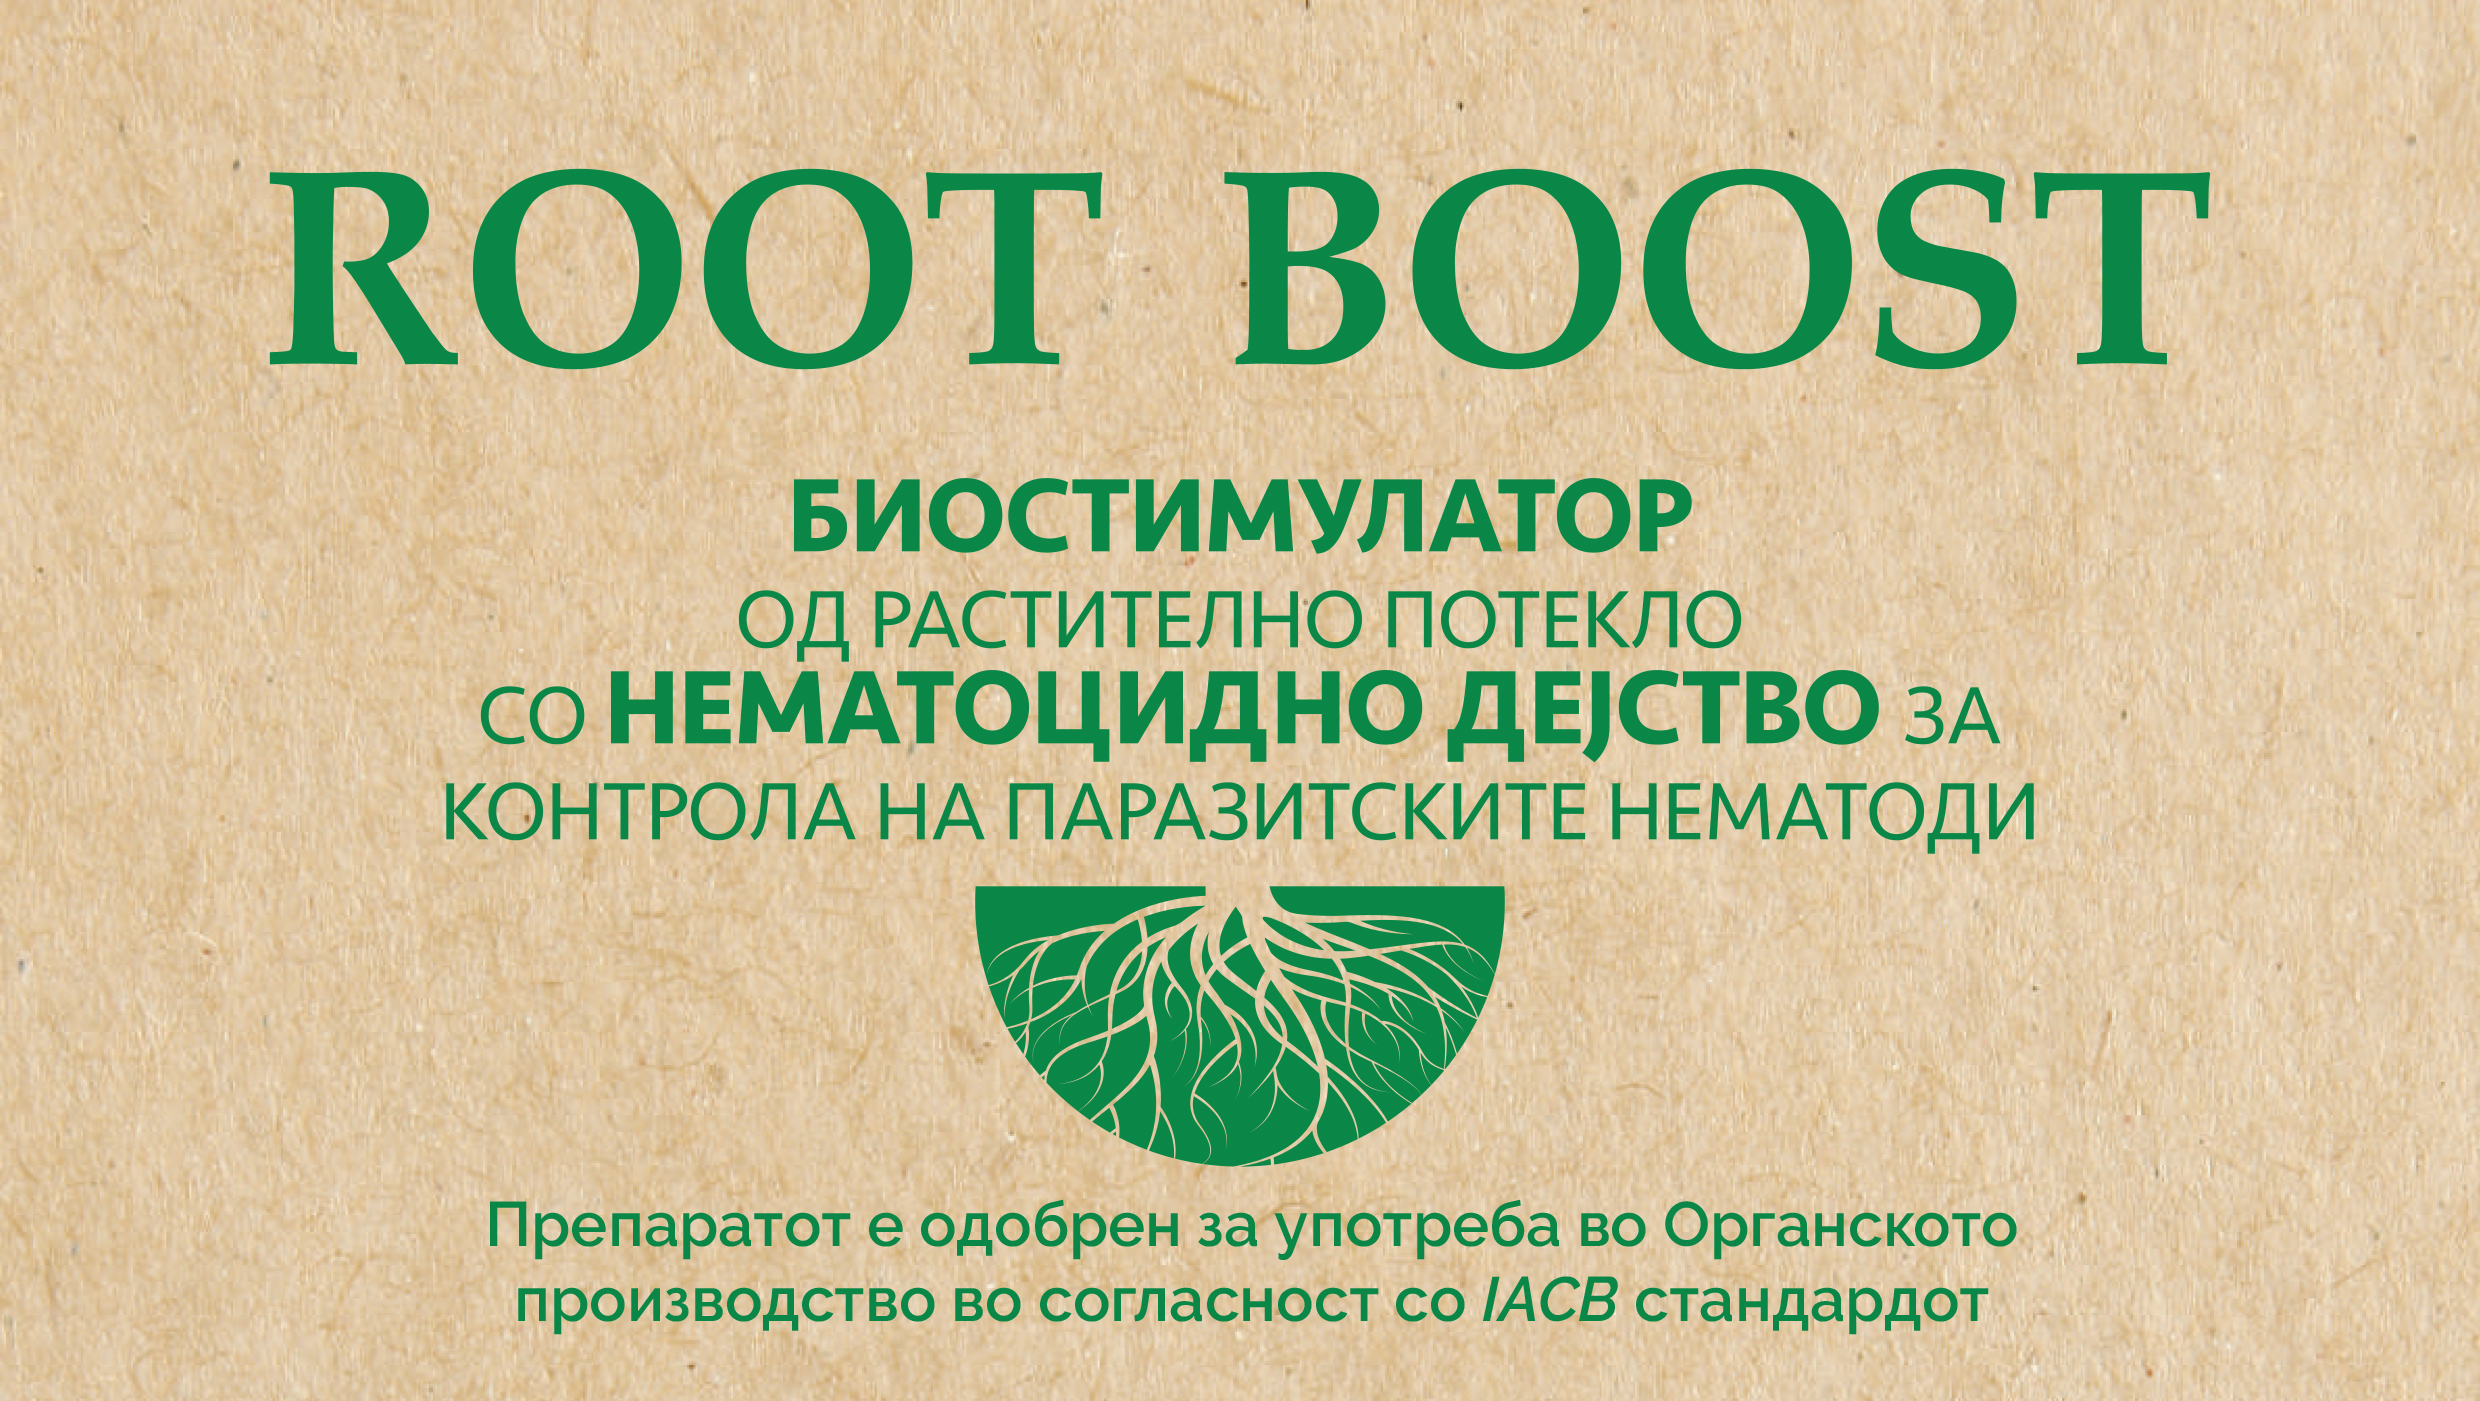 root boost flaer A4